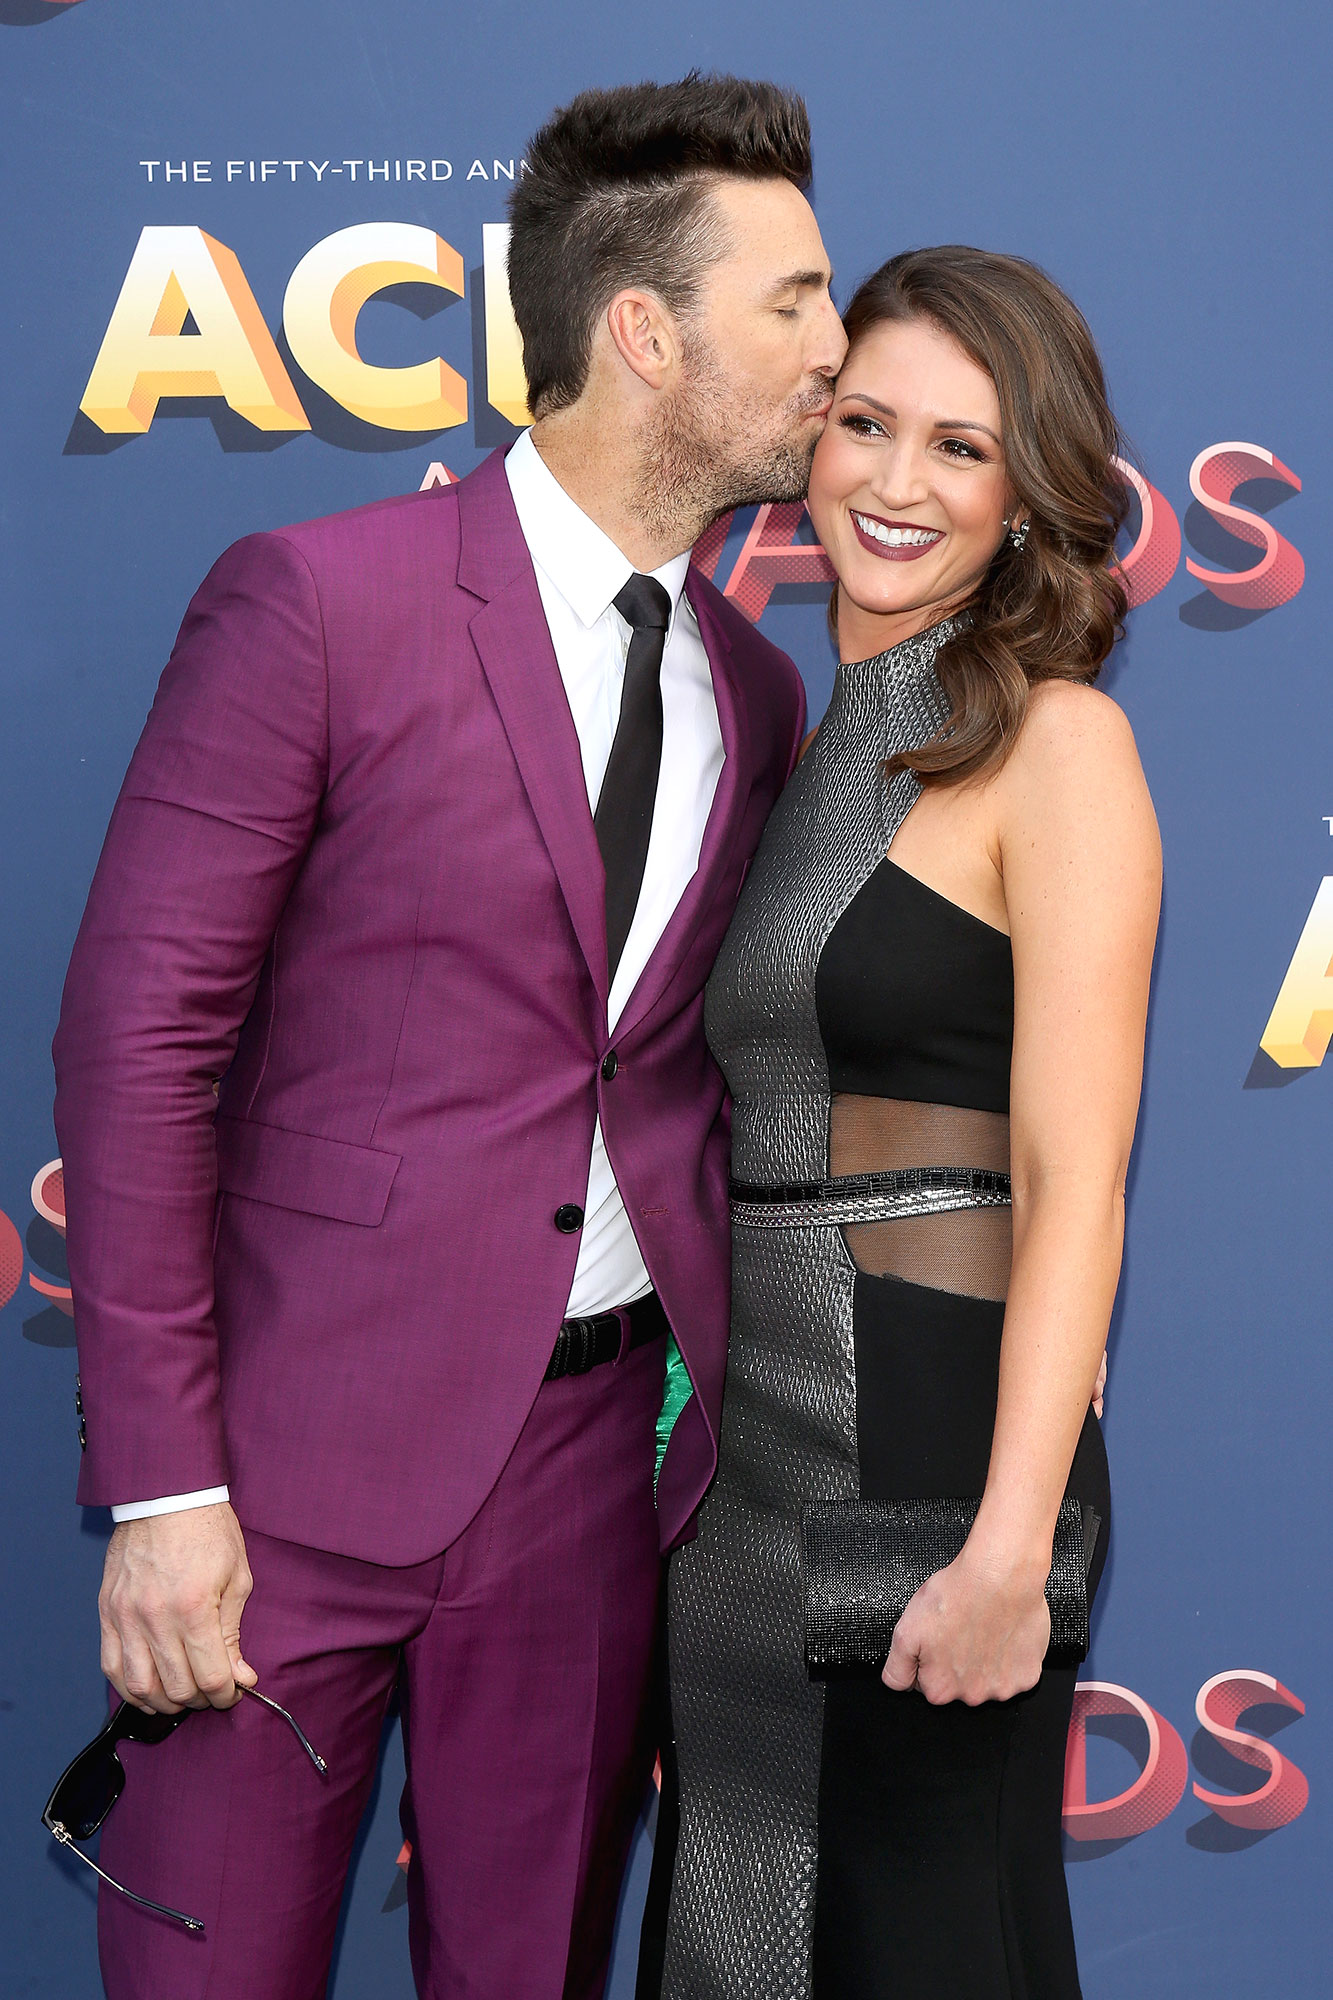 Jake Owen's Girlfriend Erica Hartlein Gives Birth to Their First Child Together, His Second - Jake Owen (L) and Erica Hartlein attend the 53rd Academy of Country Music Awards at MGM Grand Garden Arena on April 15, 2018 in Las Vegas, Nevada.